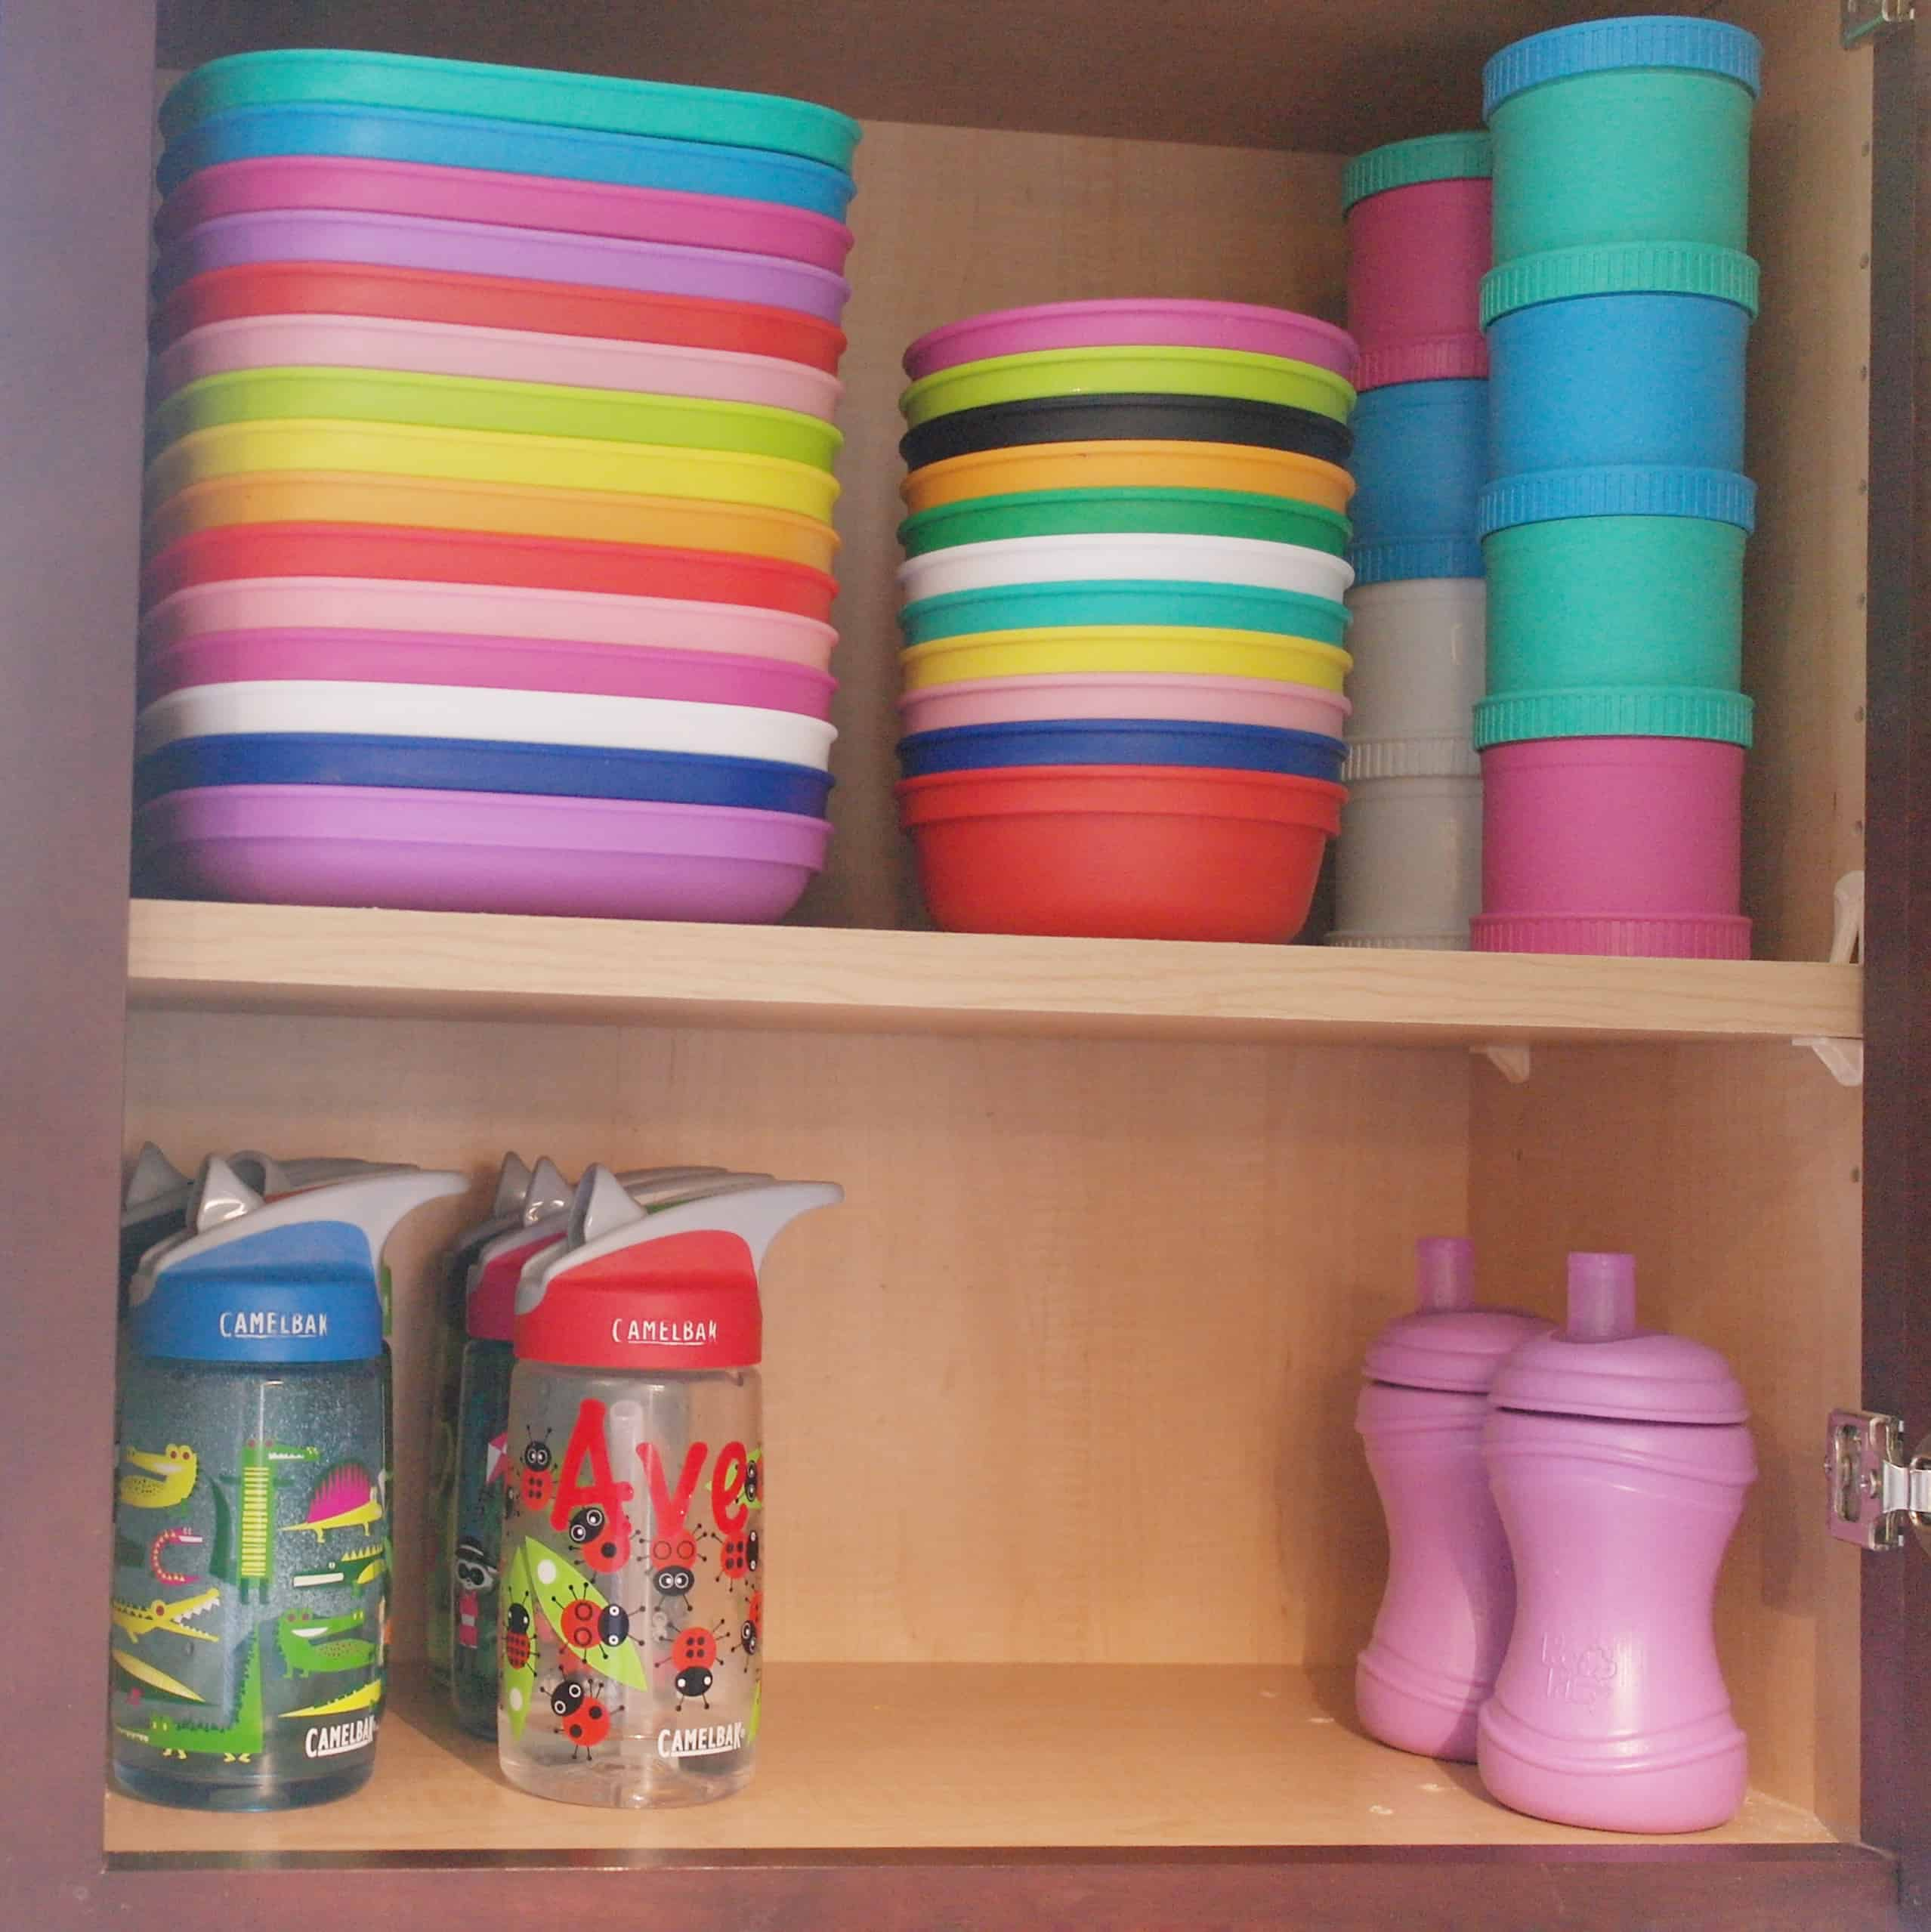 inside of kitchen cupboard with kids items